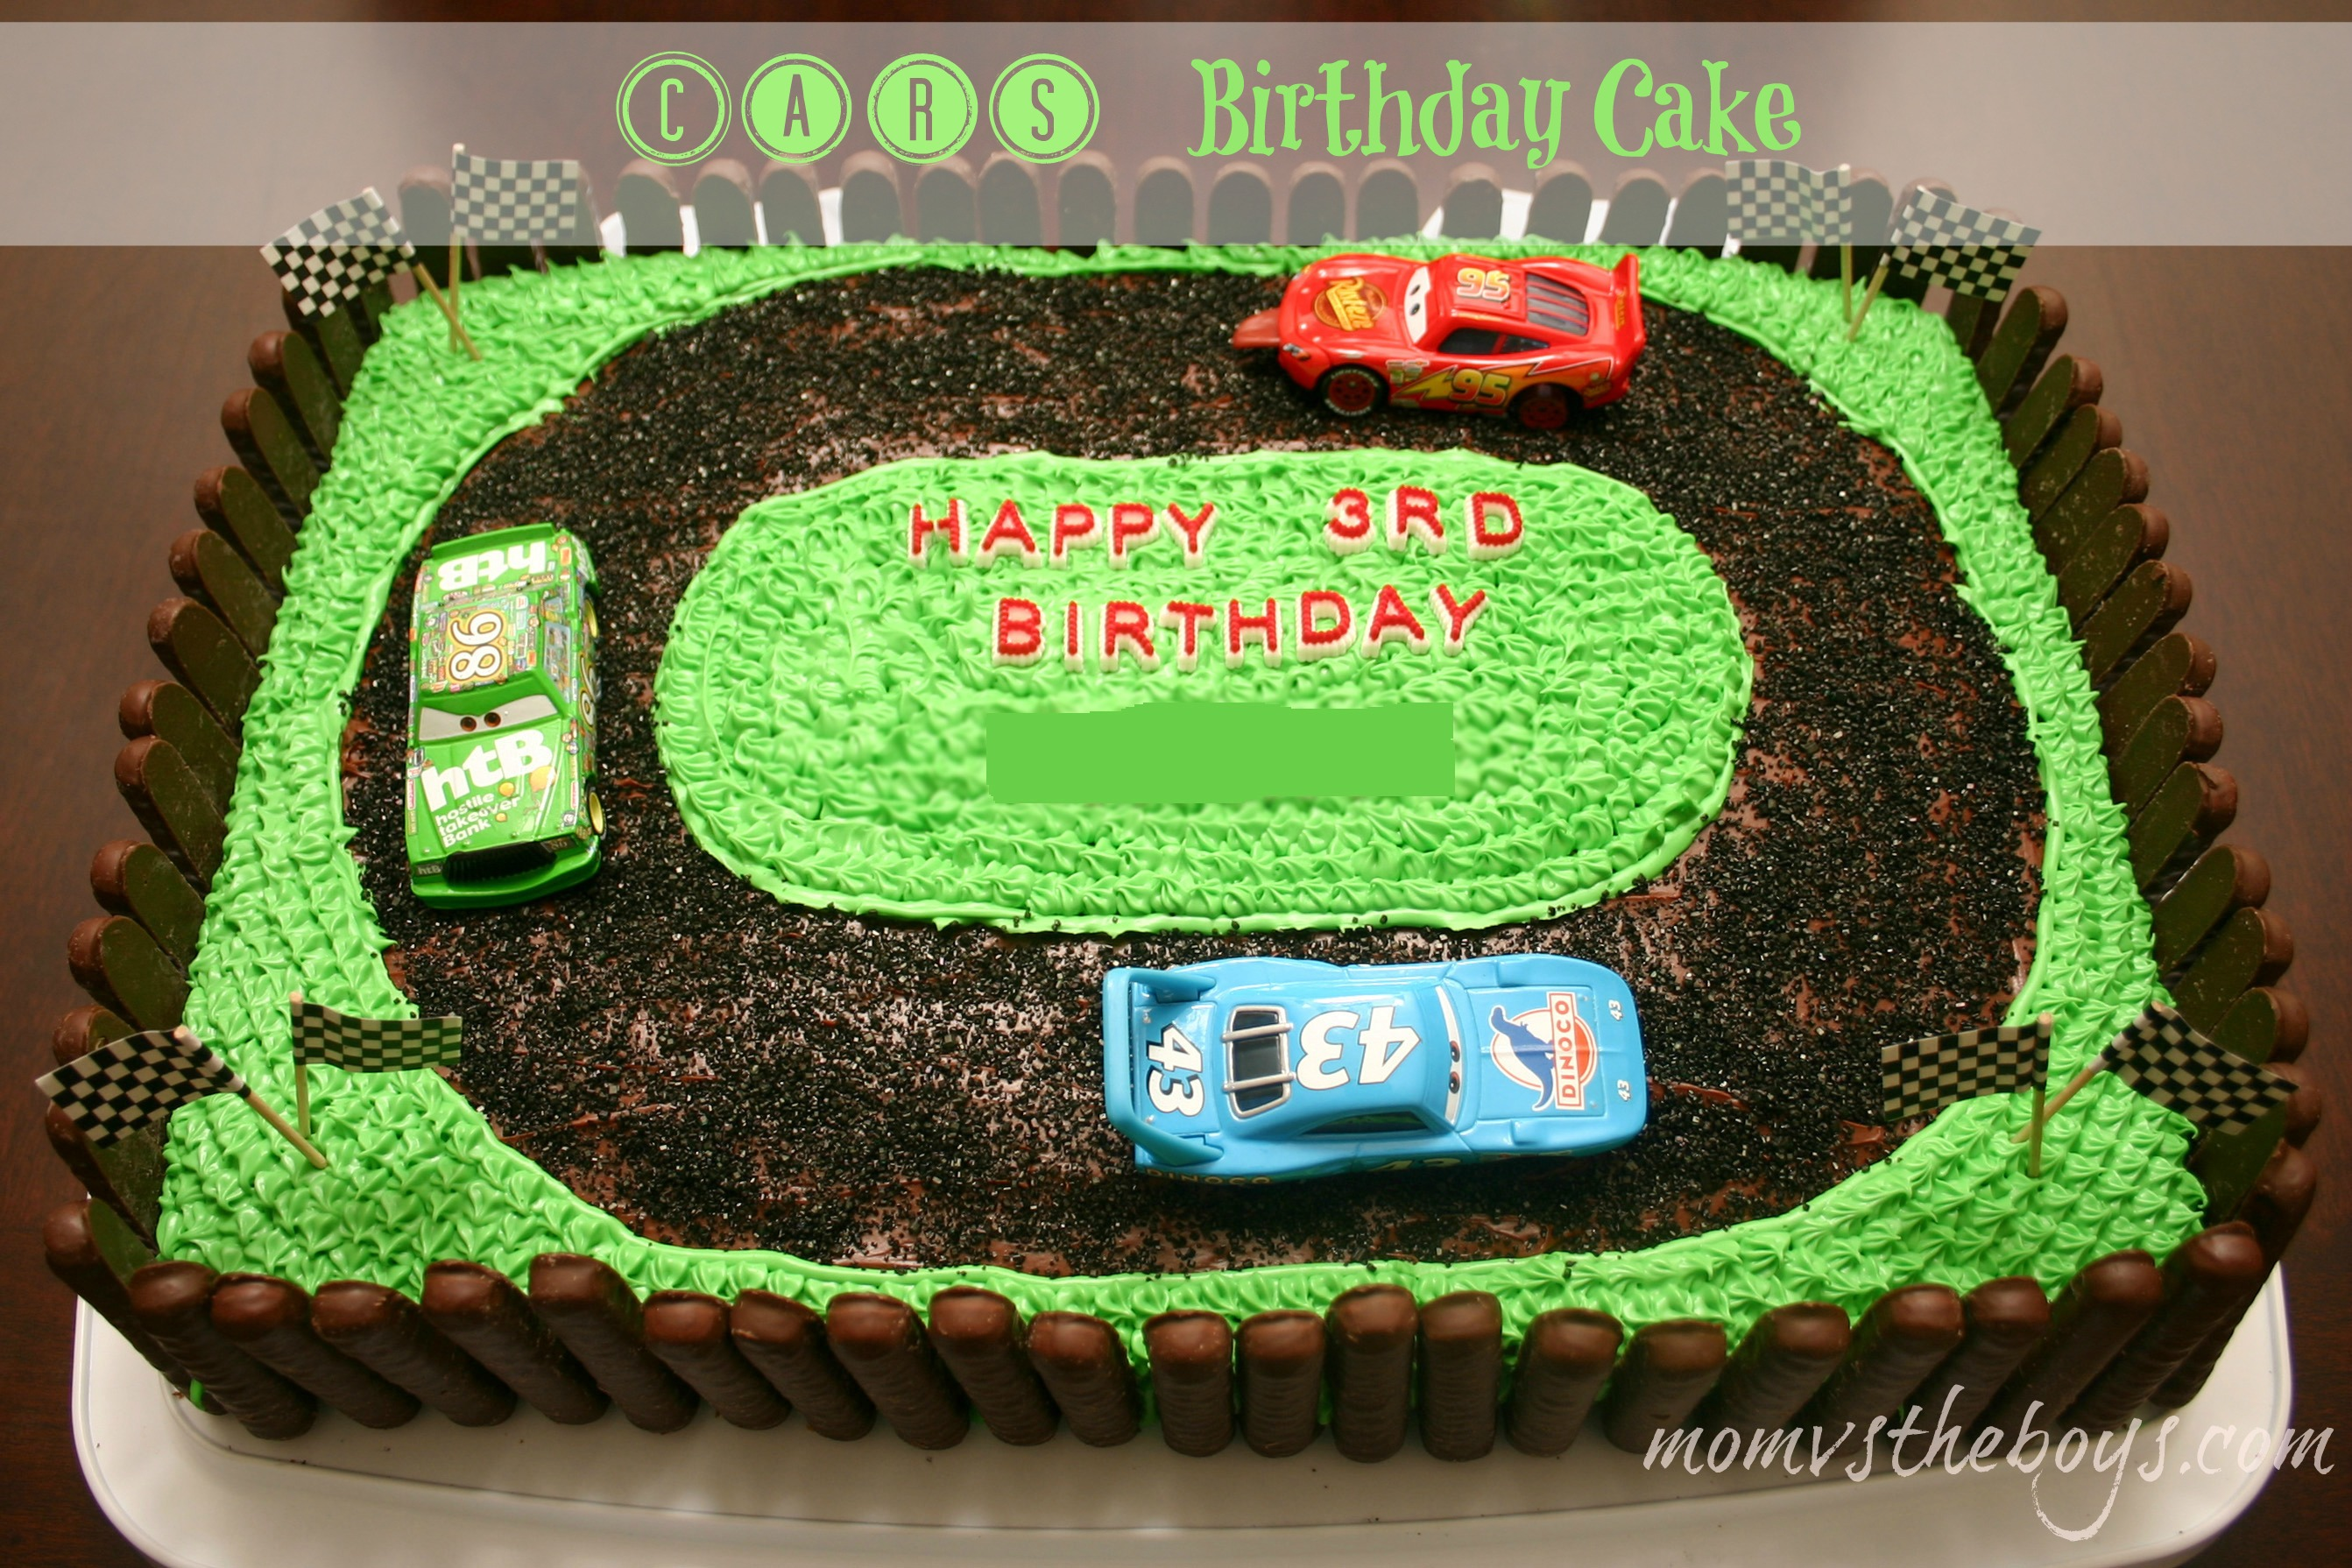 Birthday Cake Images With Car : cars birthday cake - Mom vs the Boys